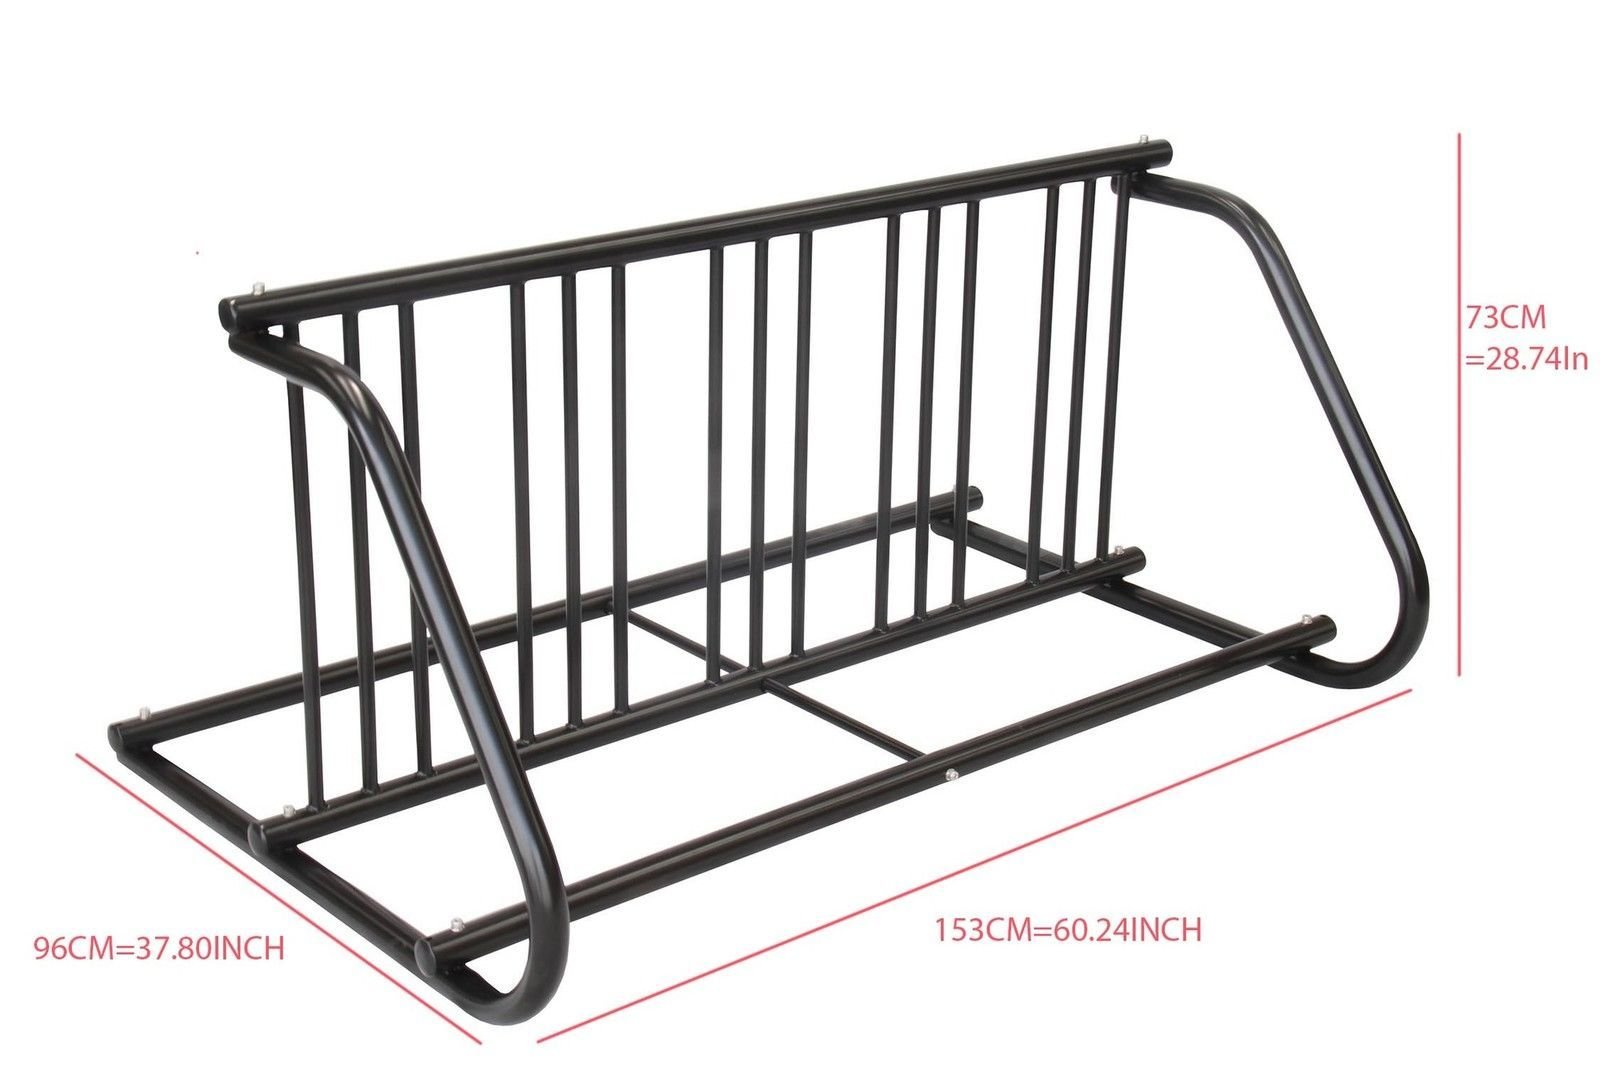 5-10 Bike Racks Bicycle Parking Stand Indoor Outdoor powder coating by CyclingDeal (Image #2)